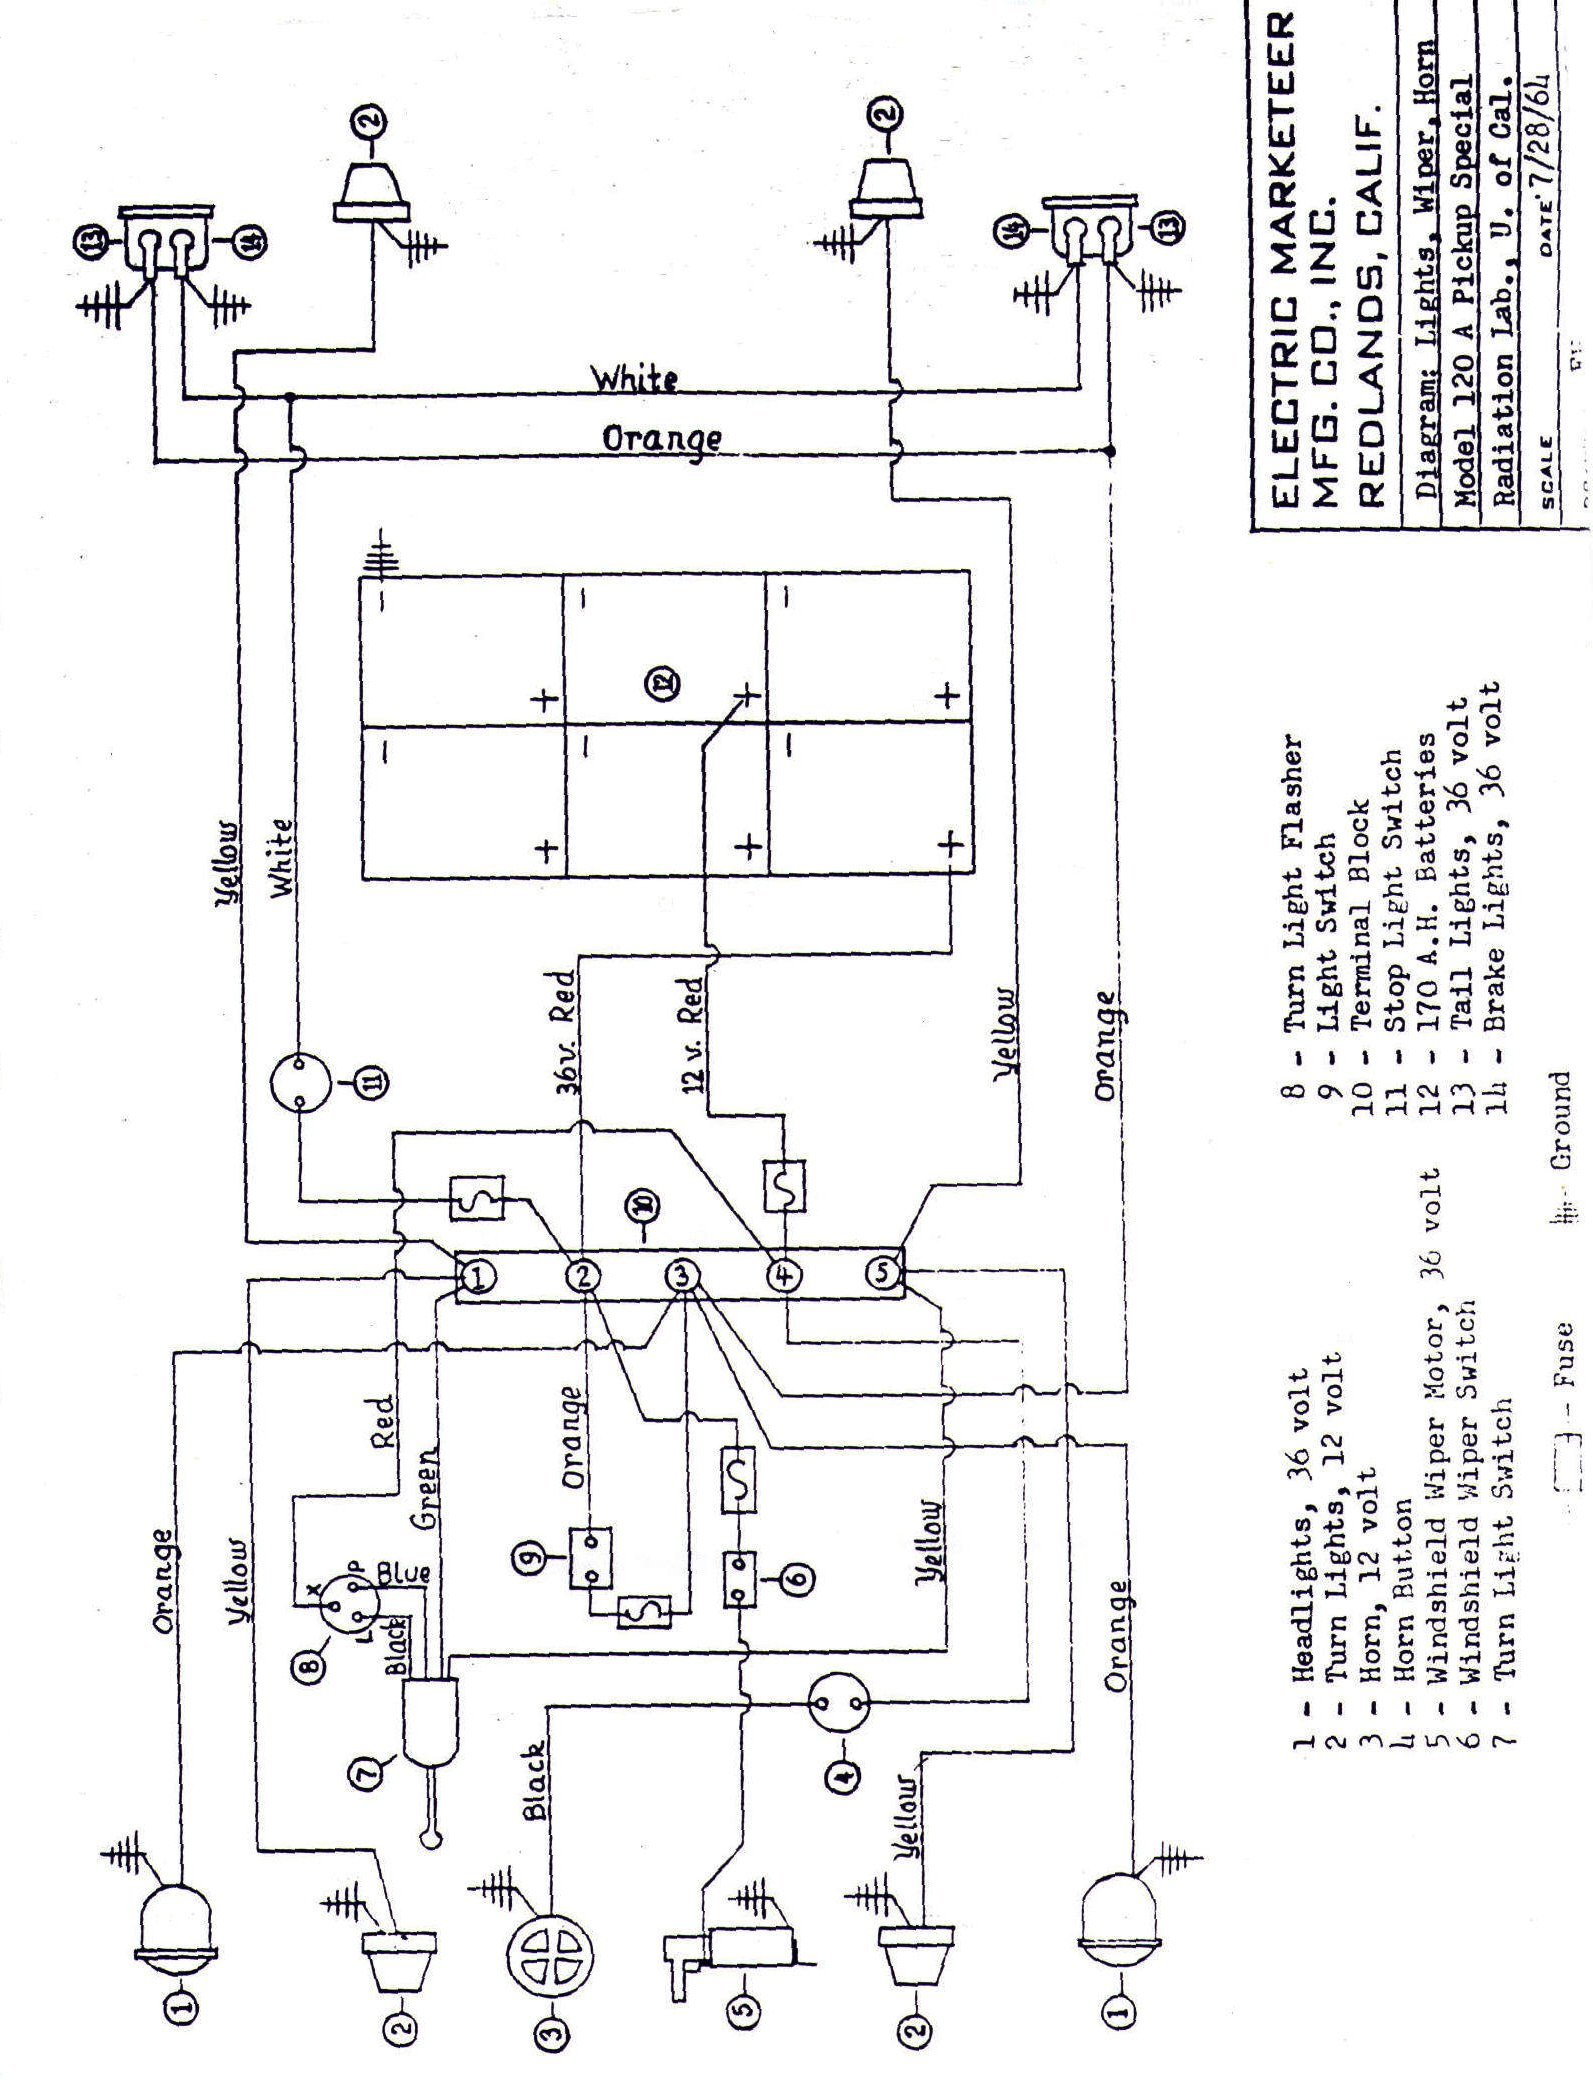 Ezgo 36 Volt Melex Wiring Diagram Delco 21si Alternator Wiring Diagram Begeboy Wiring Diagram Source